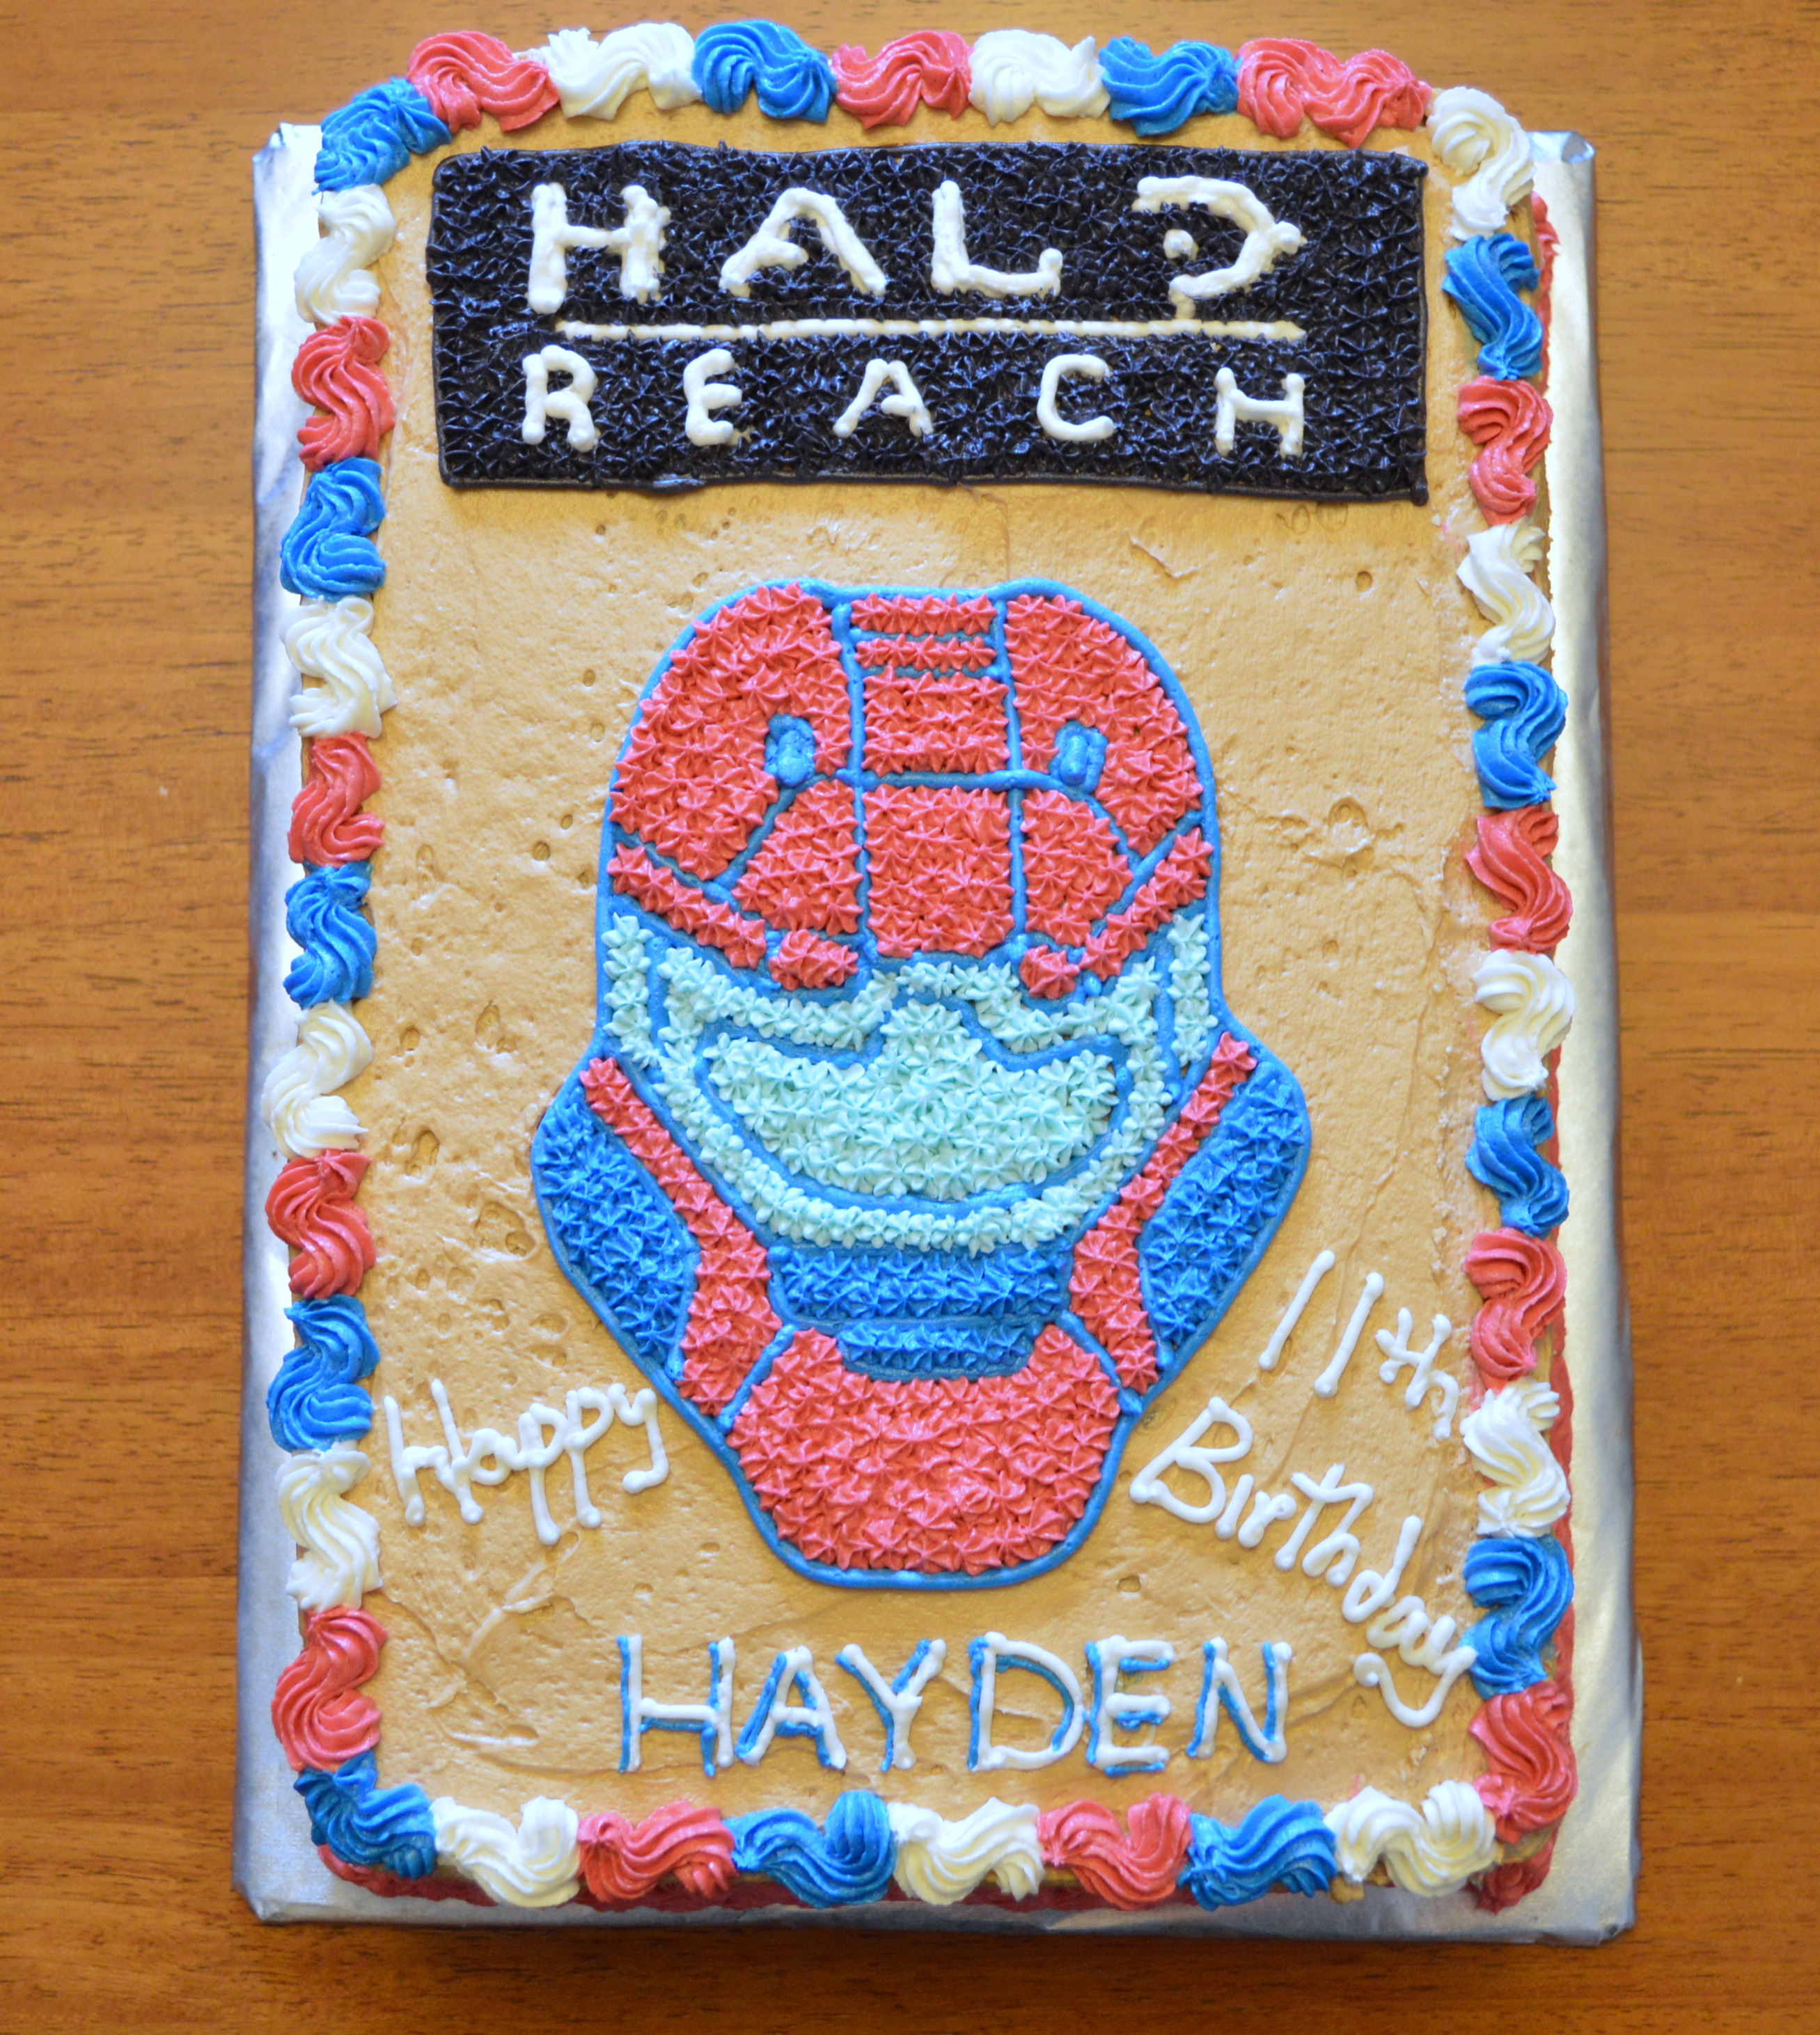 Halo Cake and Cupcakes A Little of This and a Little of That